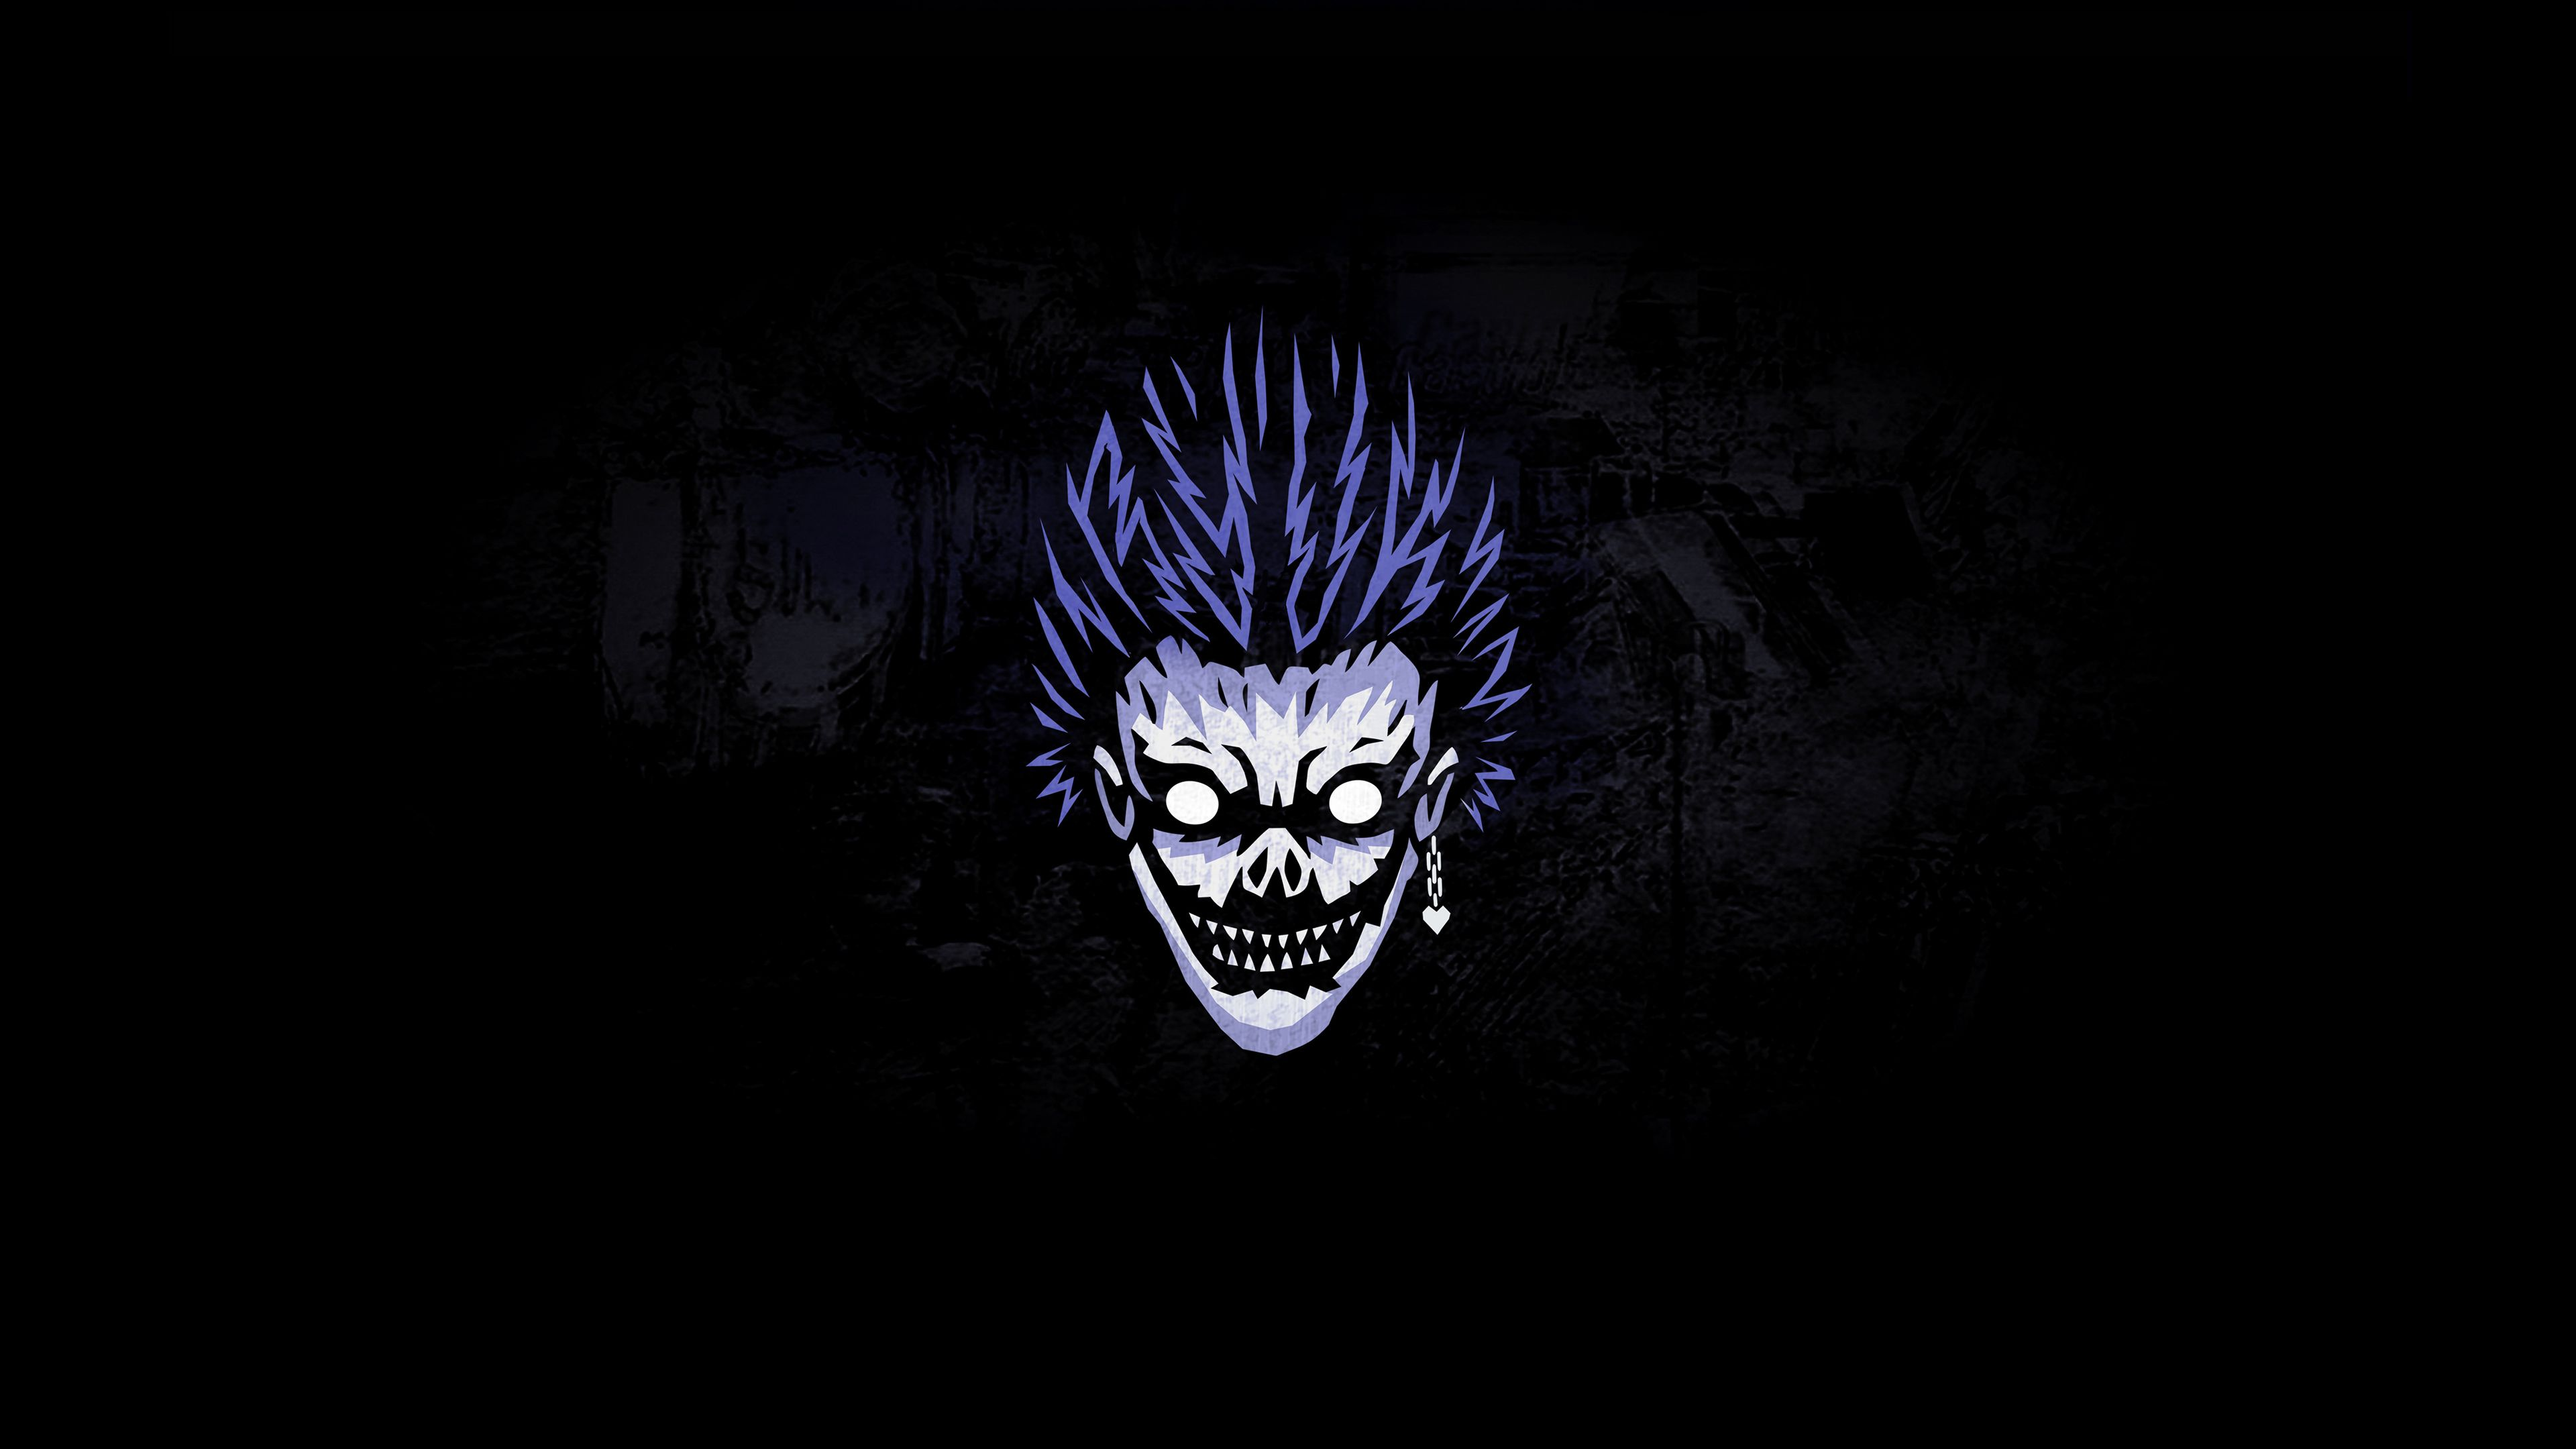 Wallpaper 4k Ryuk Minimalists 4k 4kwallpapers, artist